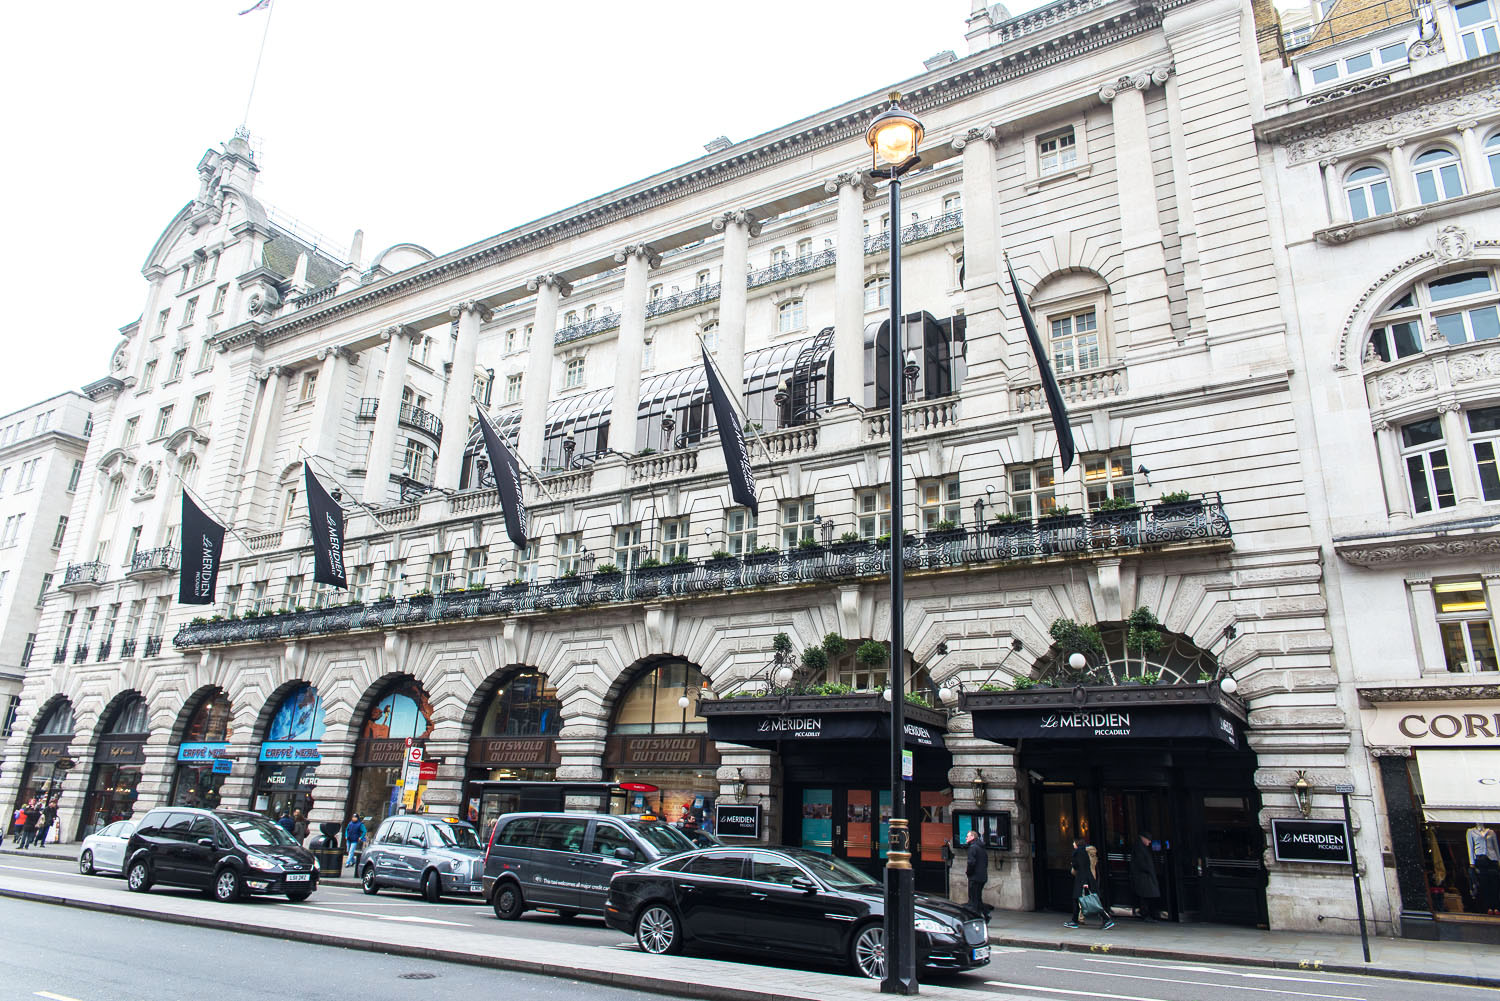 Le meridien piccadilly hotel london mondomulia for Hotel w londres